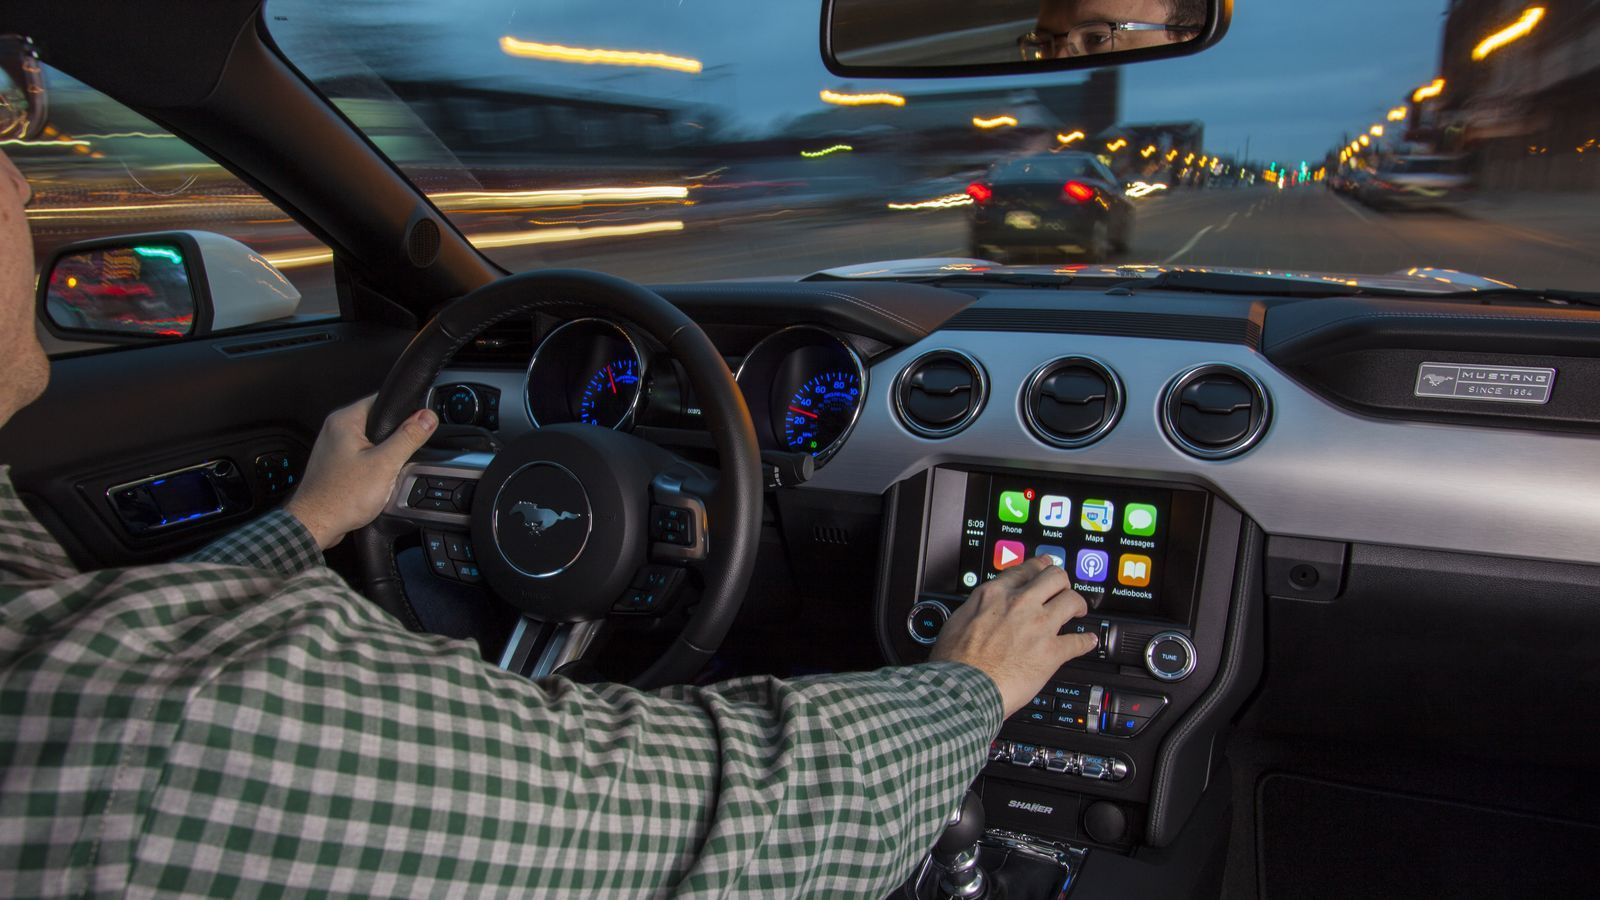 Ford Is Finally Adding Carplay And Android Auto To Its Cars